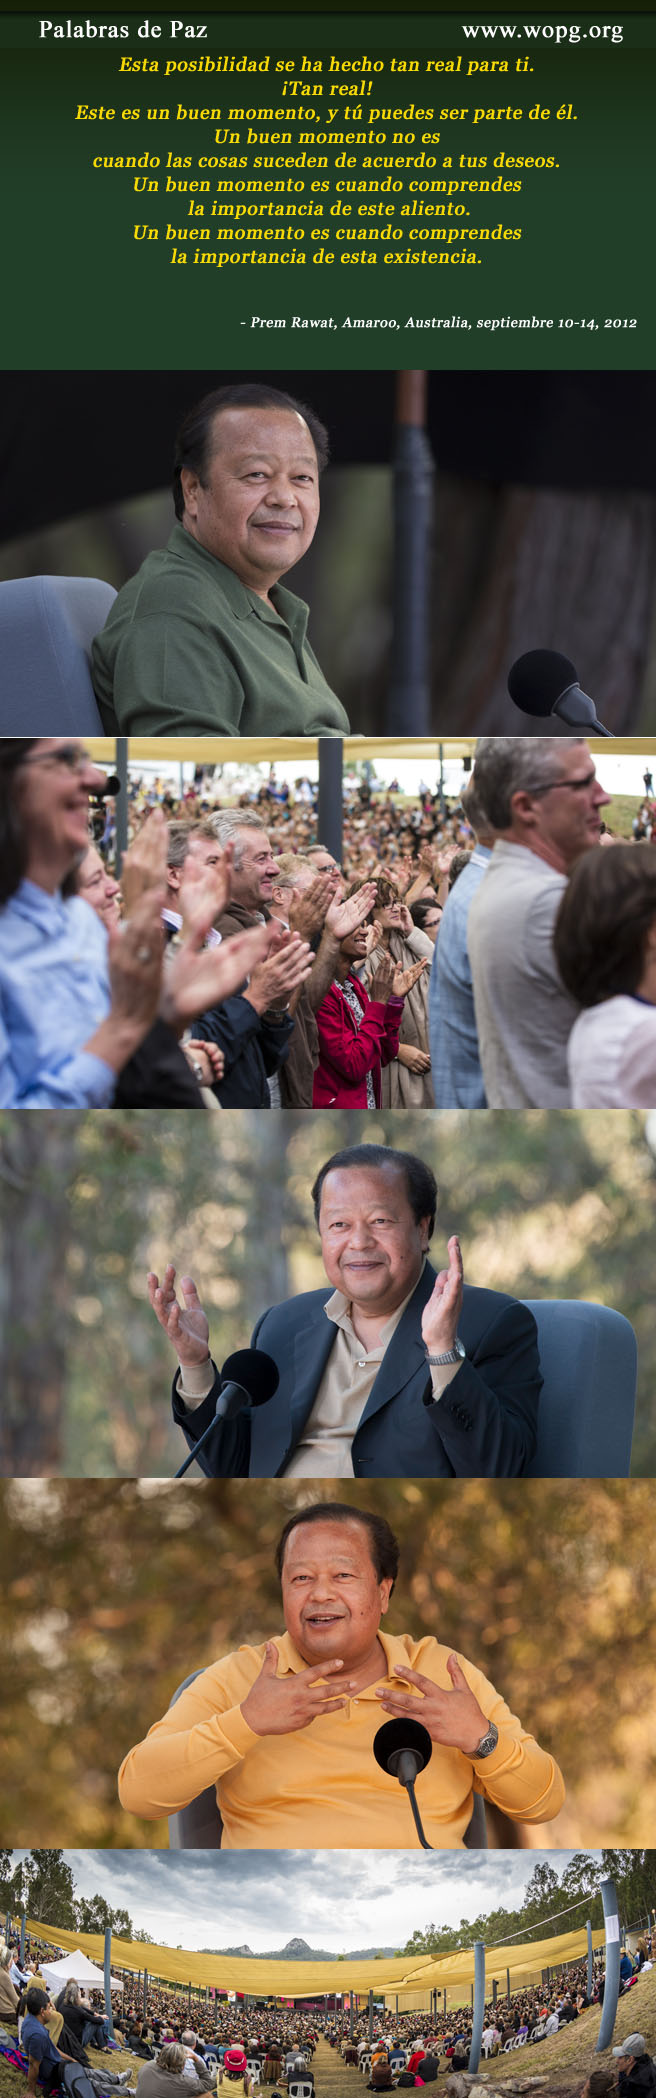 Prem Rawat, Amaroo, Australia, September 10-14, 2012,quote